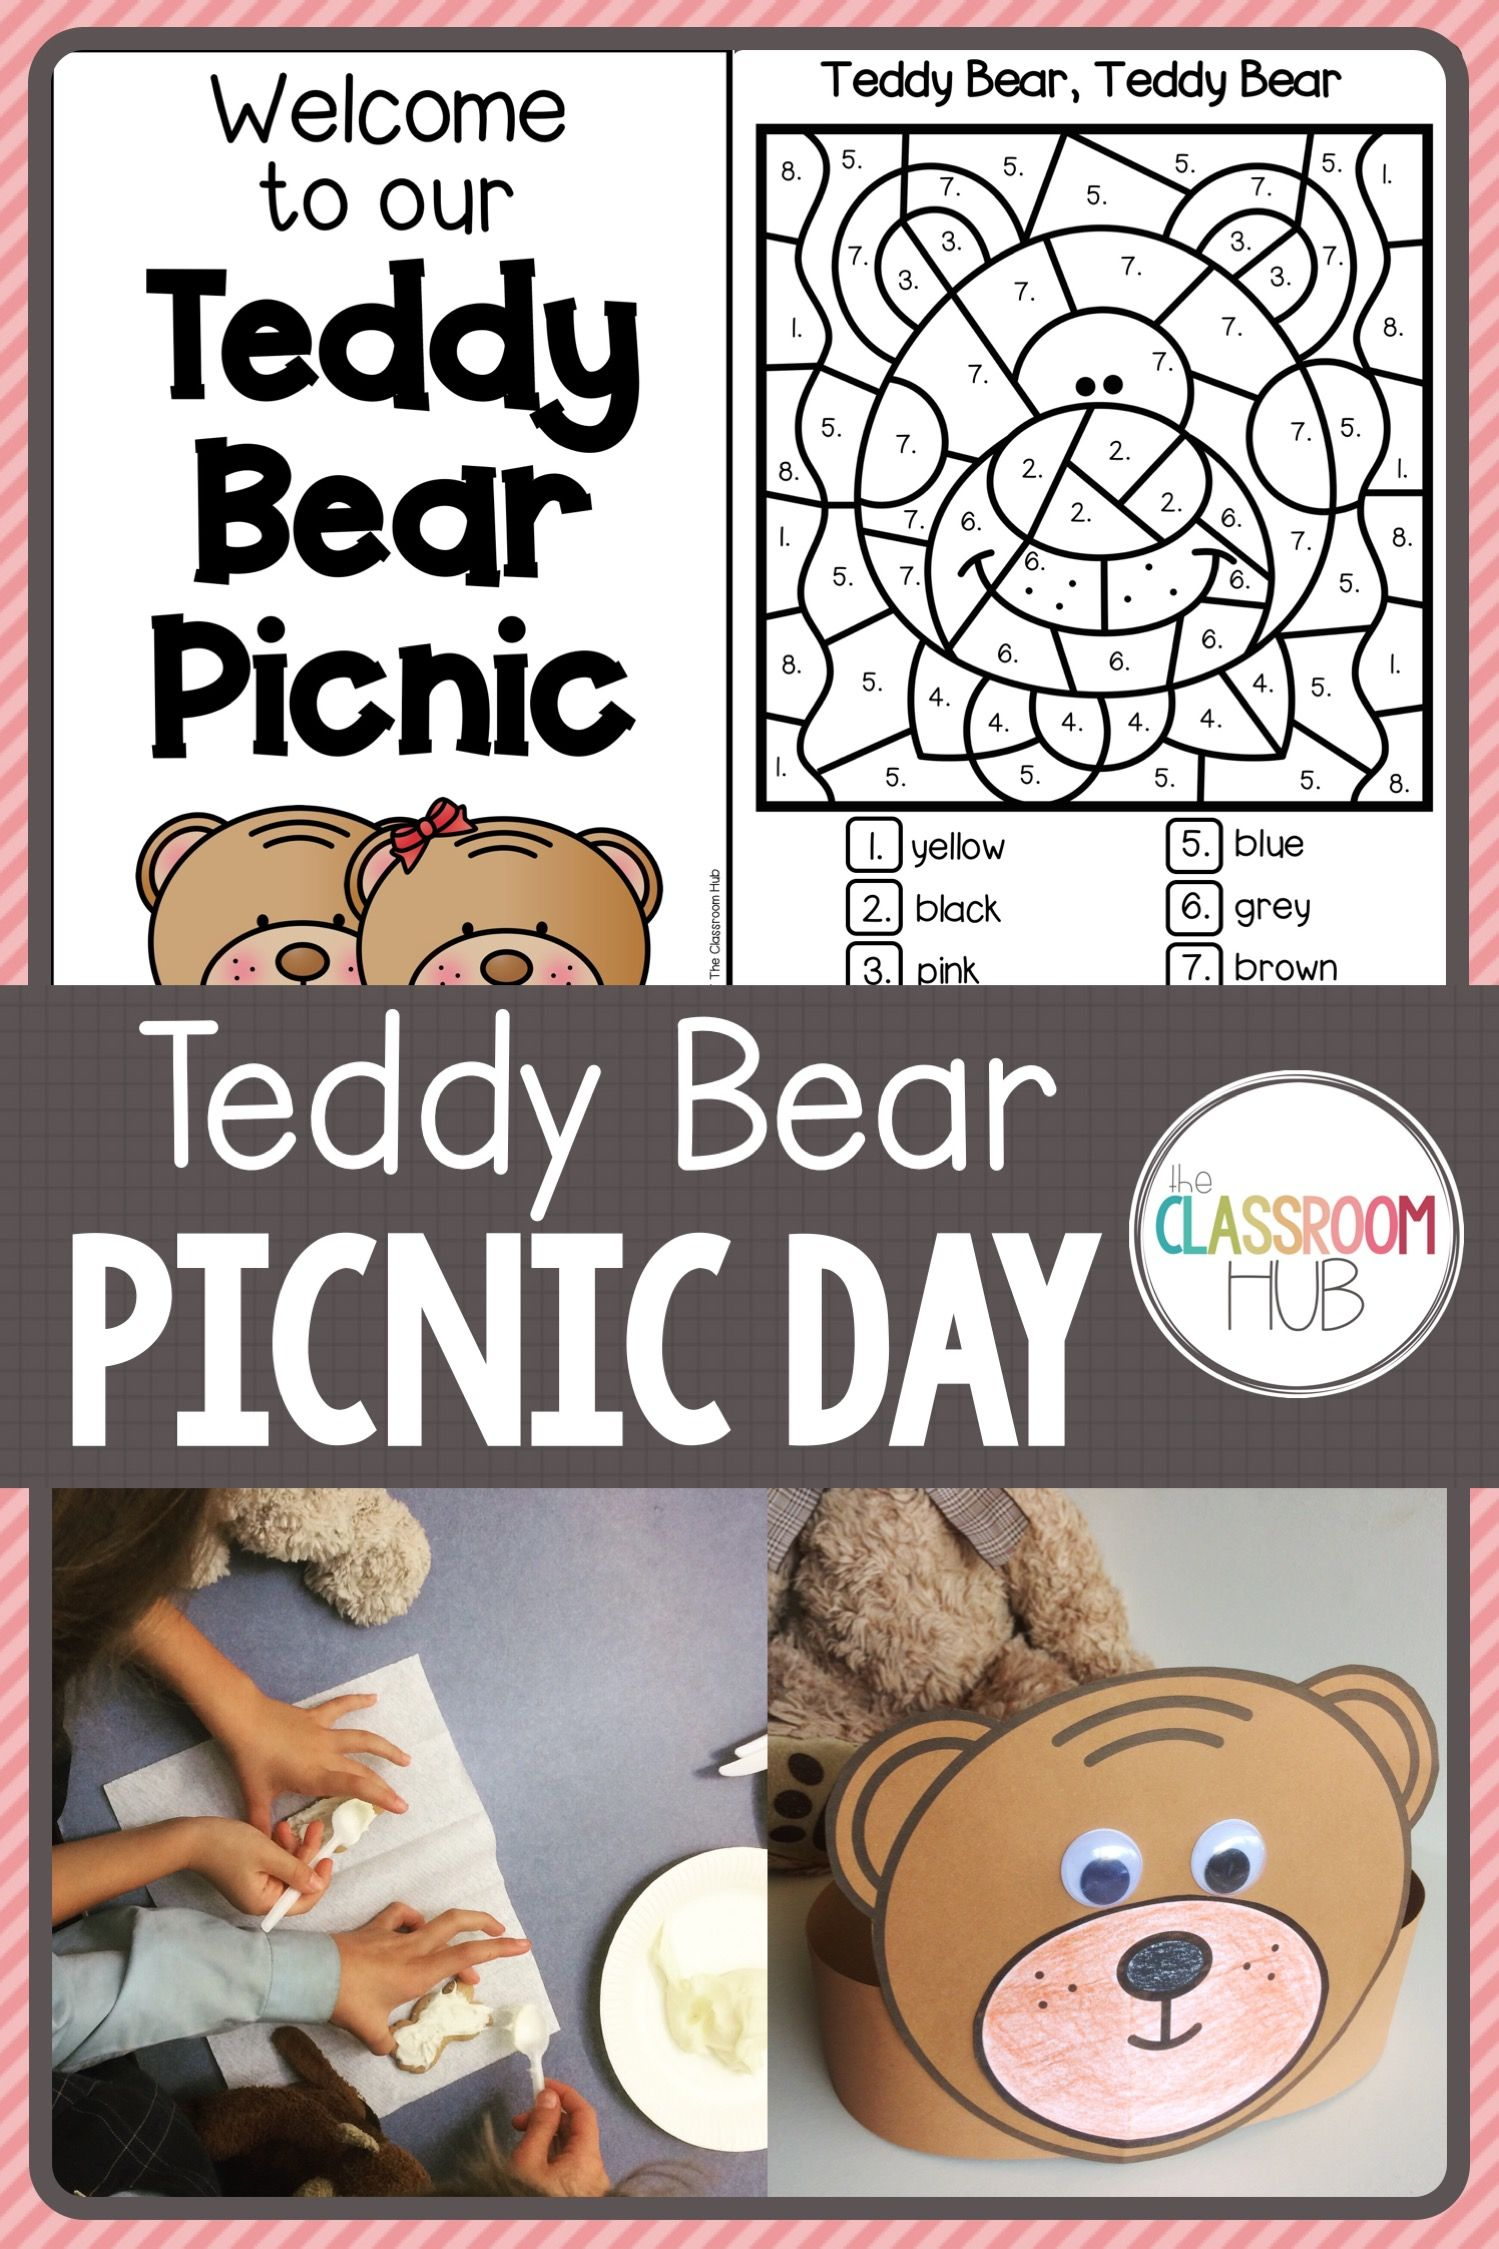 Are You Looking For Ideas A Teddy Bears Picnic Theme Day That Your Preschool